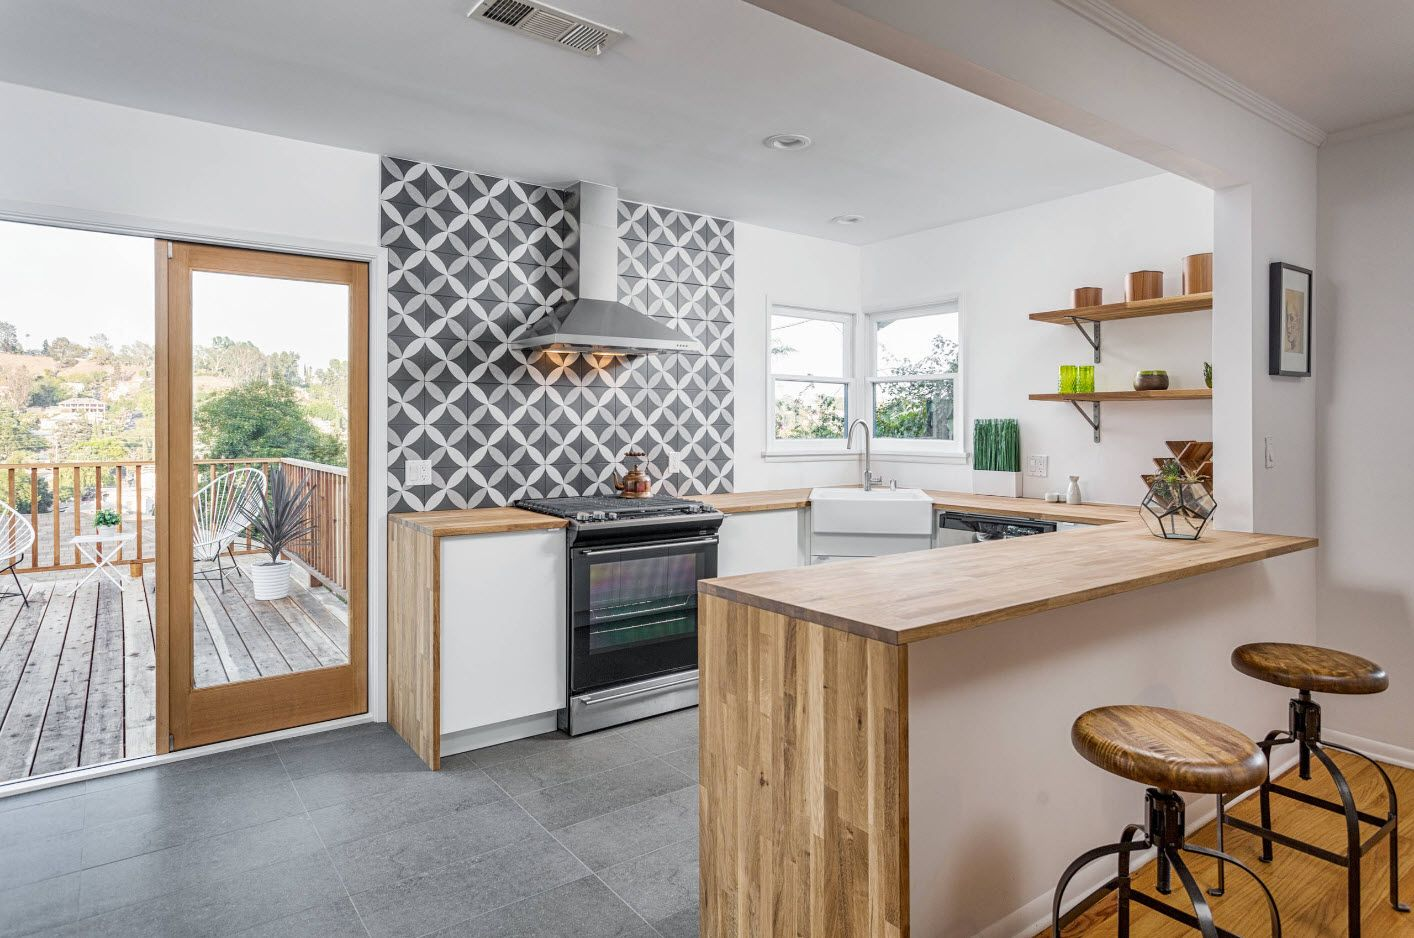 Extractor hood at the background of contrasting wall pattern